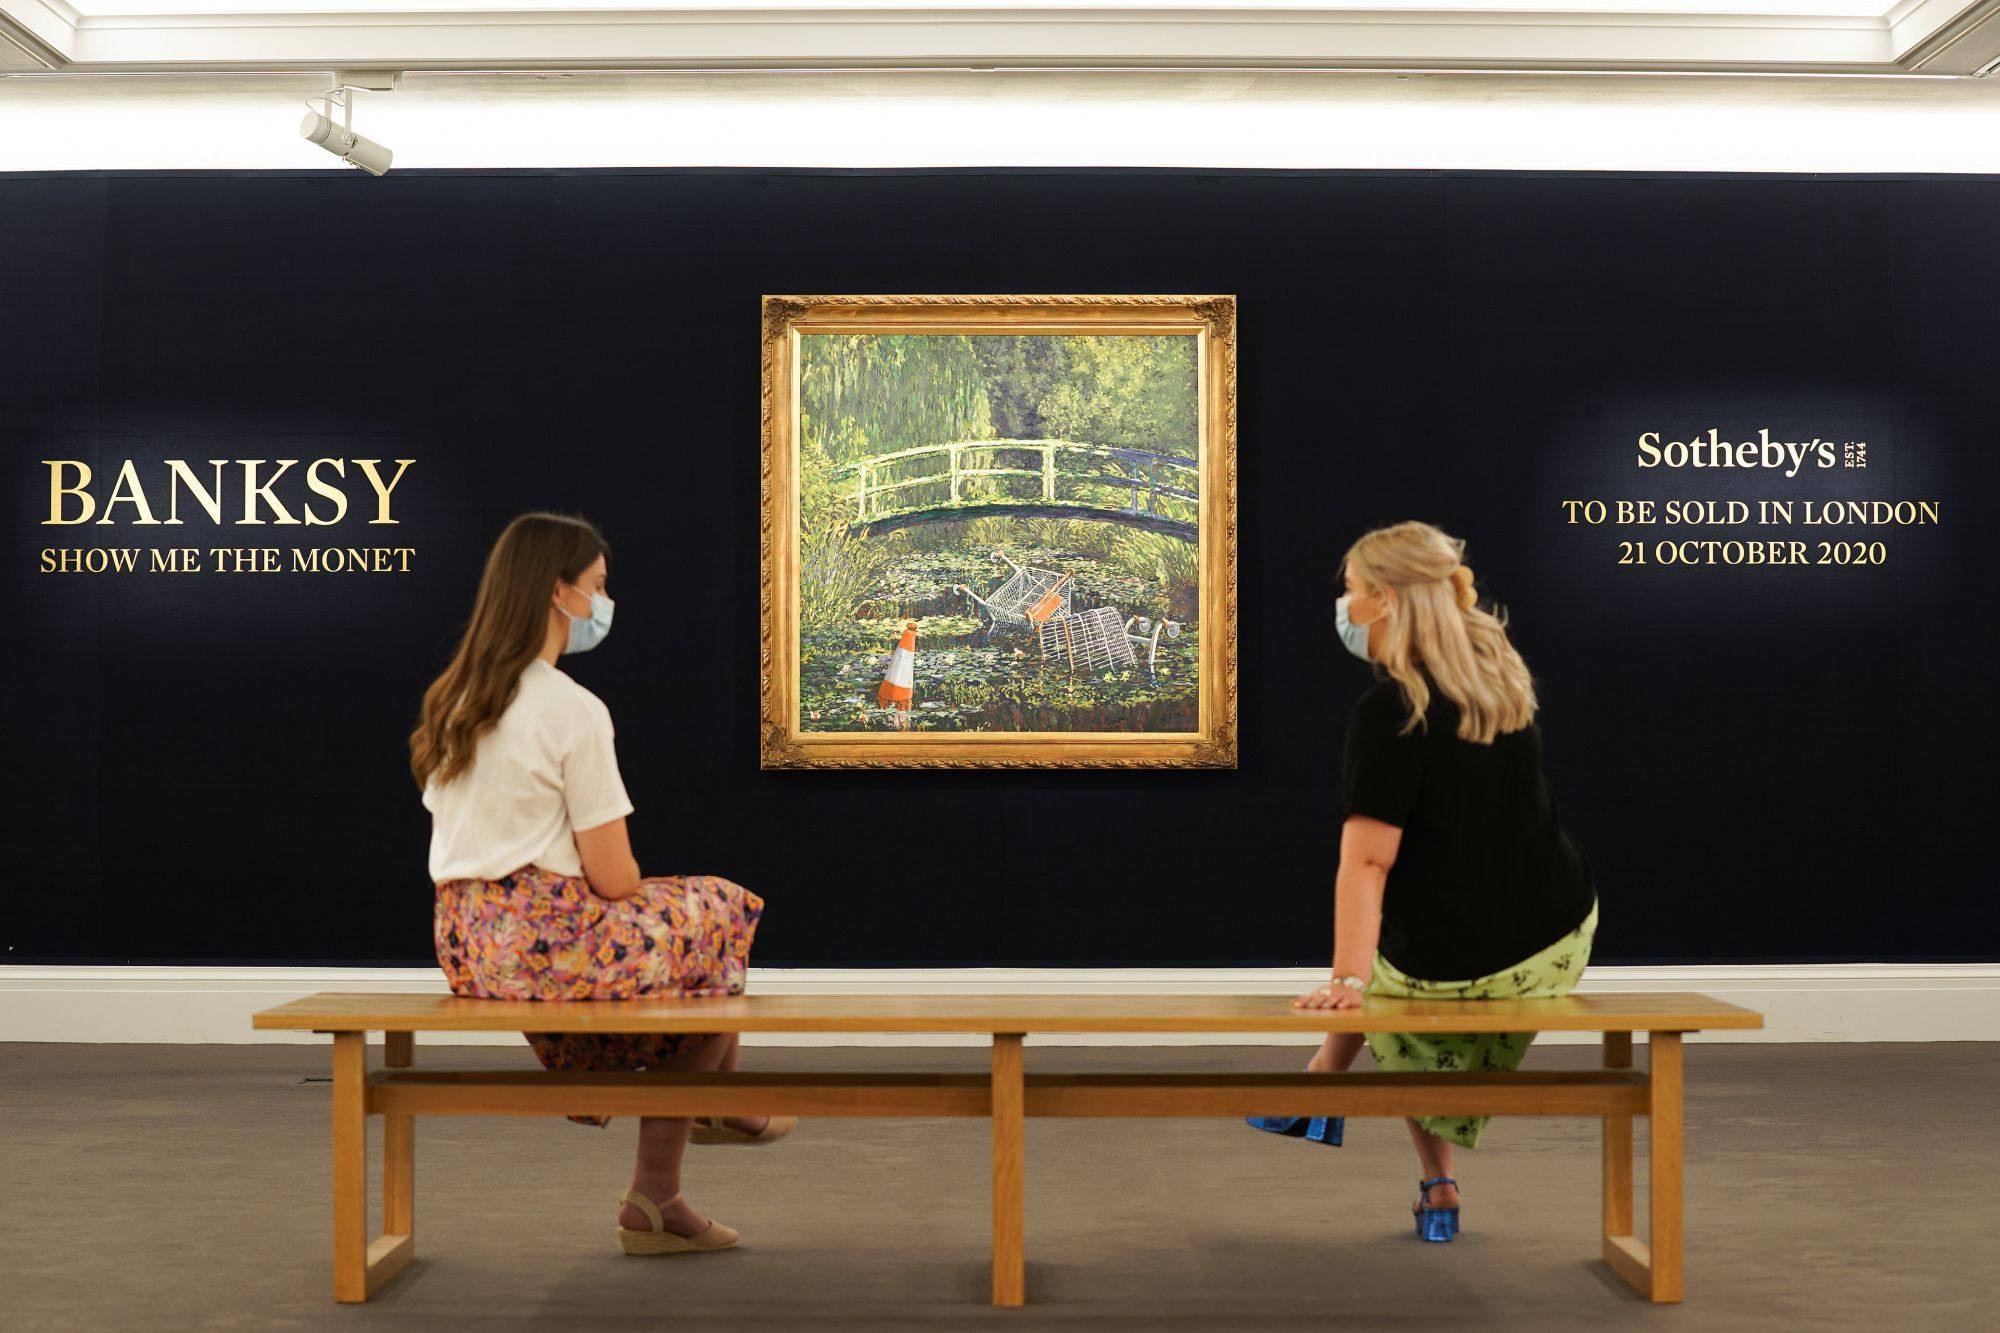 LONDON, ENGLAND - SEPTEMBER 18: Banksy's 'Show Me The Monet' (2005) to star in Sotheby's 'Modernites/Contemporary' evening auction on the 21st October with an estimate of £3,000,000 to £5,000,000 at Sotheby's on September 18, 2020 in London, England. (Photo by Michael Bowles/Getty Images for Sotheby's)